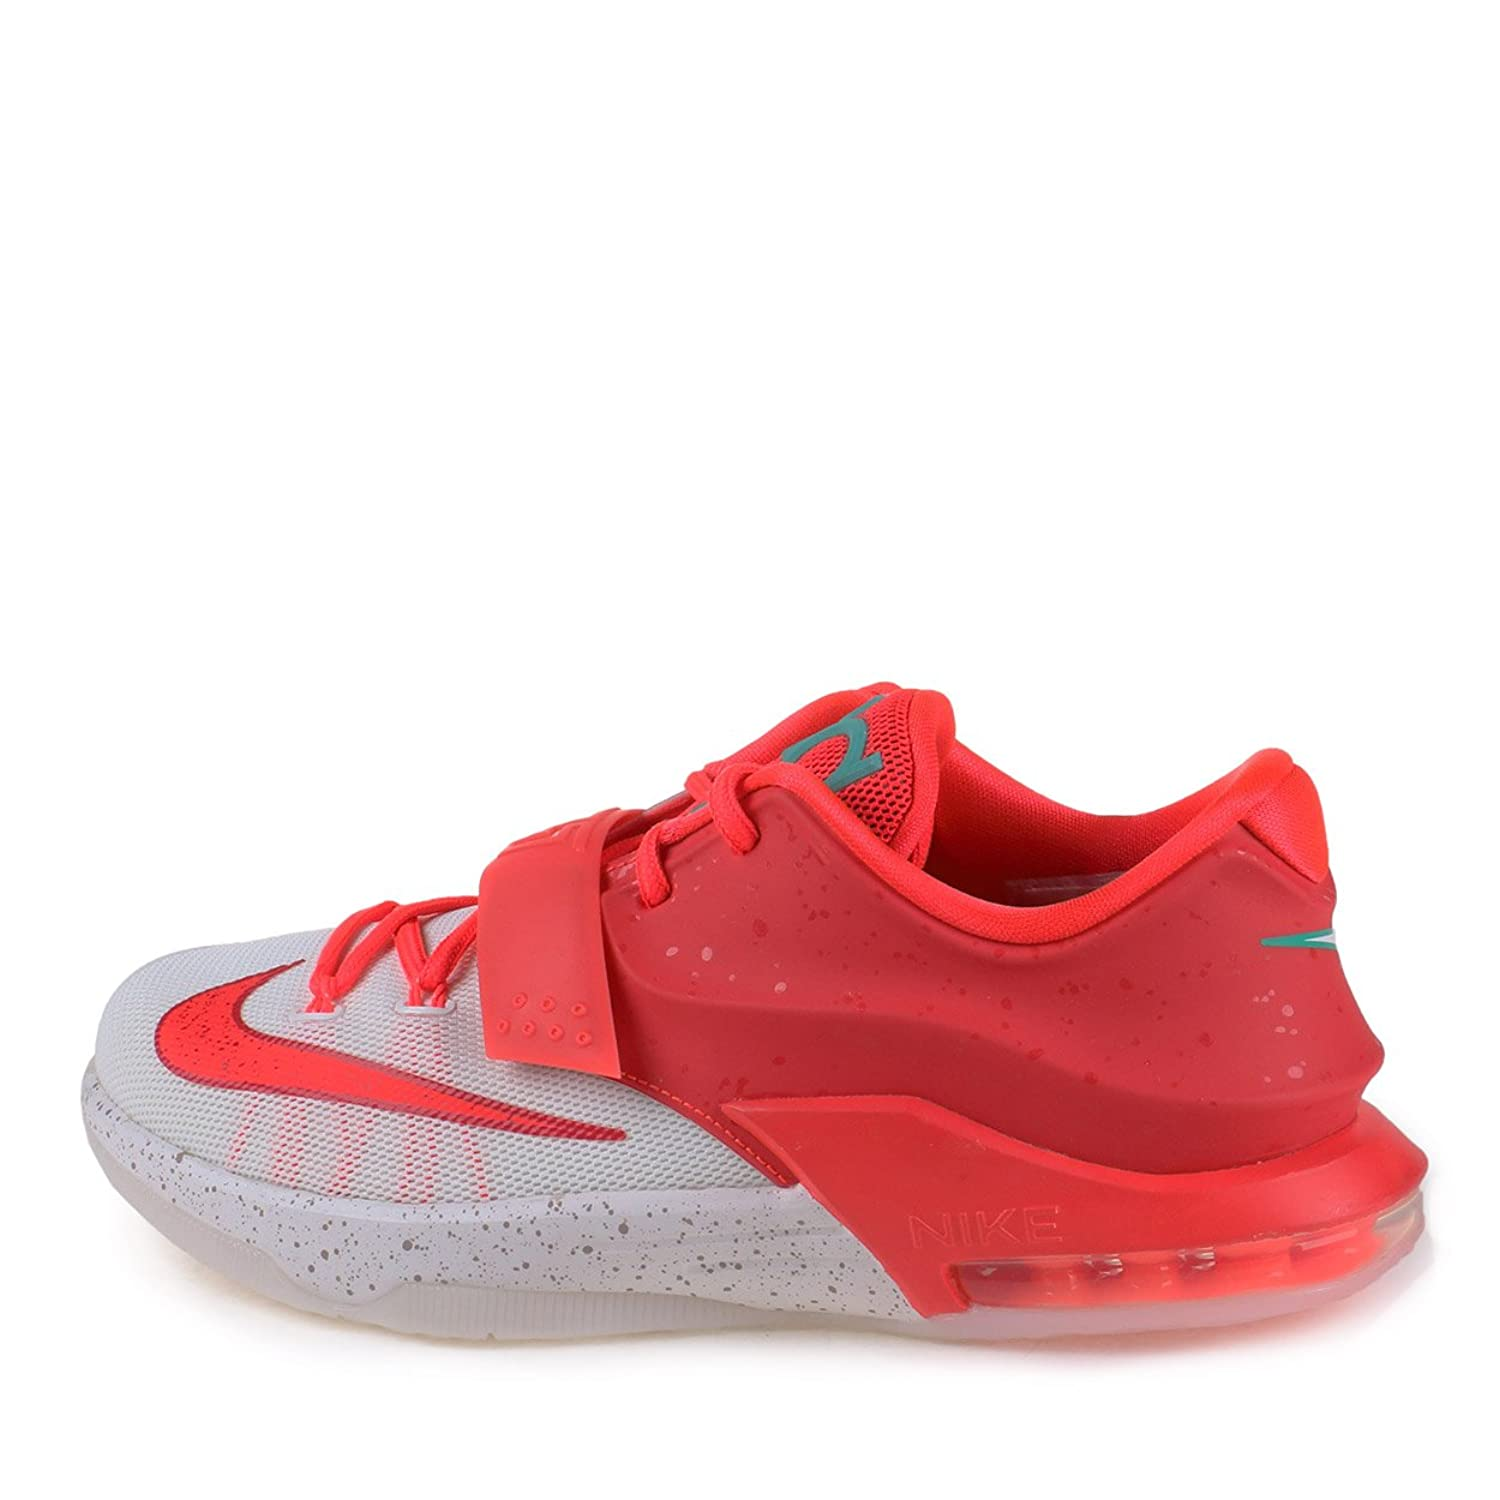 Kd 6 Christmas Online Gs | The Centre for Contemporary History